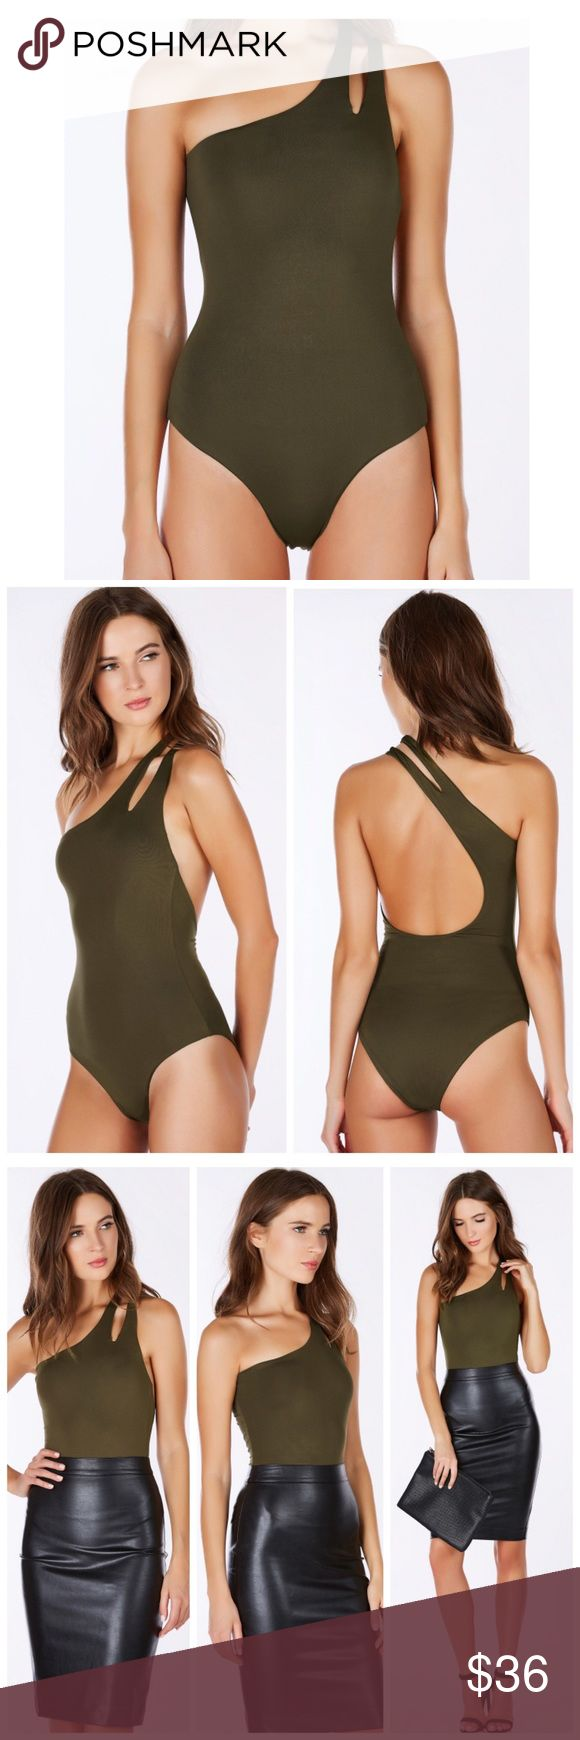 ✨Brand New✨ One Shoulder Bikini  Get the celeb look in this sexy one piece! Gorgeous one shoulder design with flirty split shoulder straps. Amazing smooth material with a great stretch. Deep cut out in back for a seductive finish. Wear it by the pool as a bathingsuit or paired with bottoms as a bodysuit! Brand listed for exposure Polyester-Spandex blend Runs true to size Hand wash cold Zara Swim One Pieces